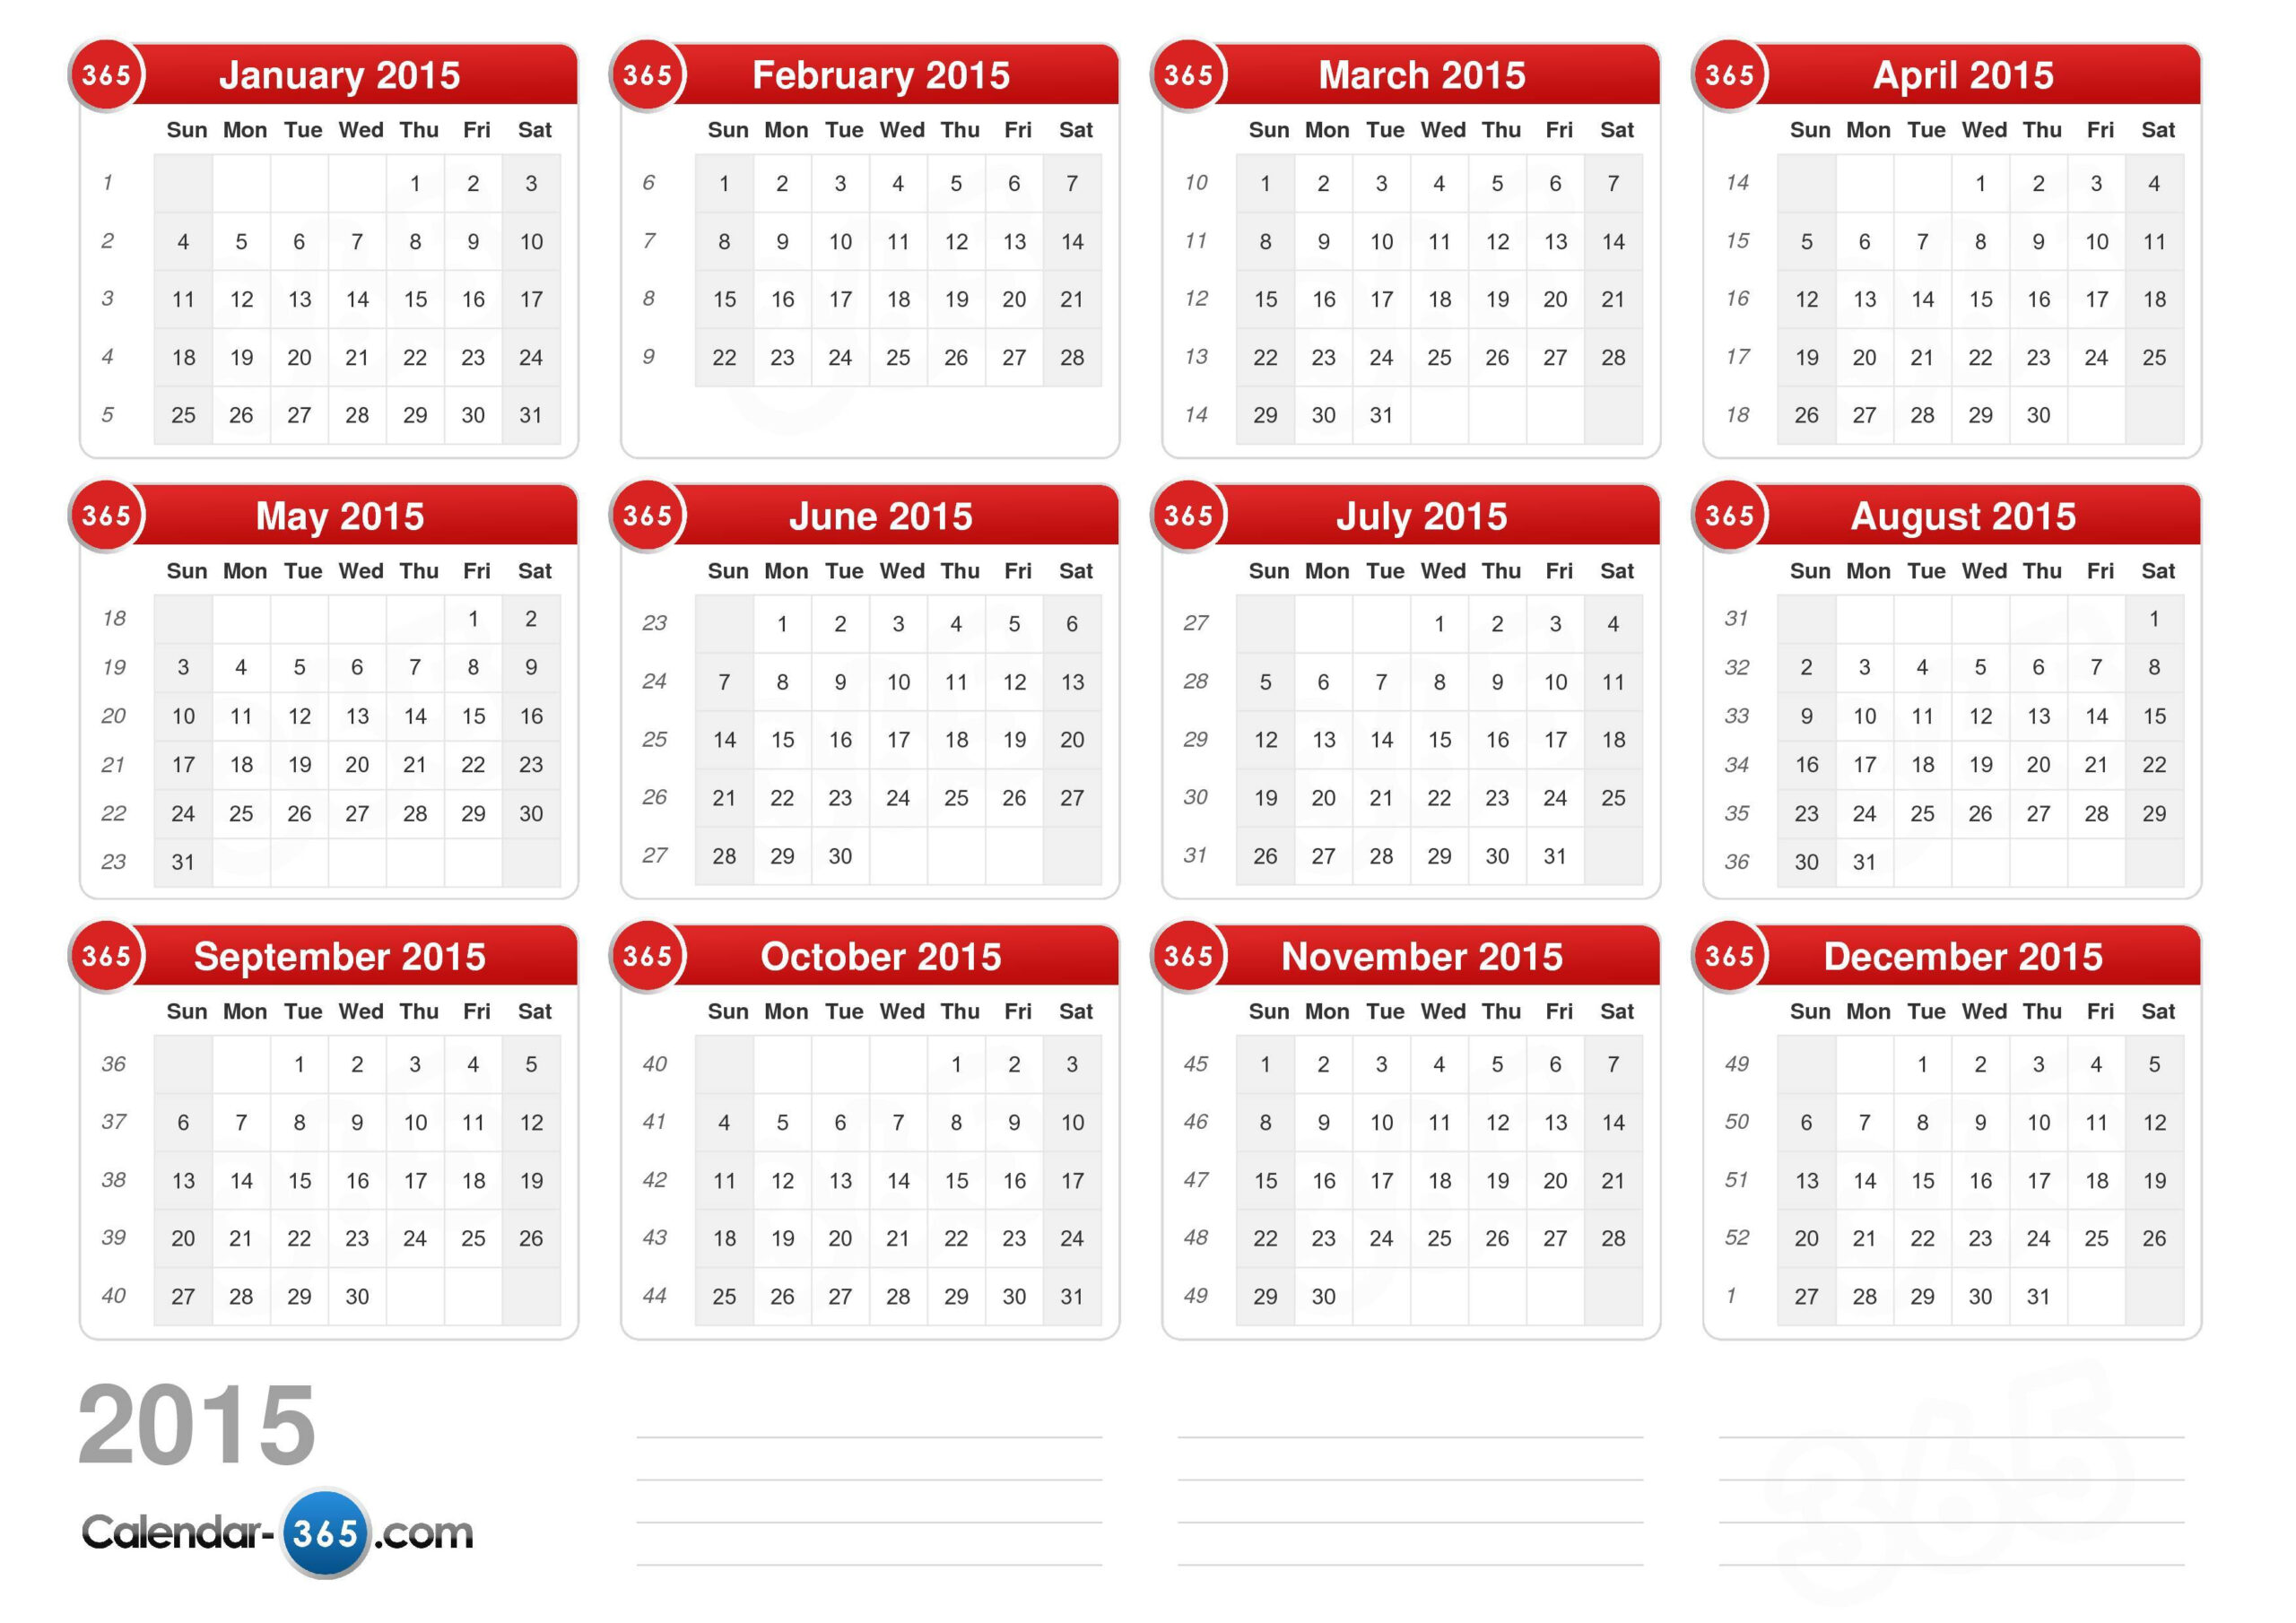 Julian Calendar With Week Numbers | Free Printable Calendar with Julian Date Calendar Pdf